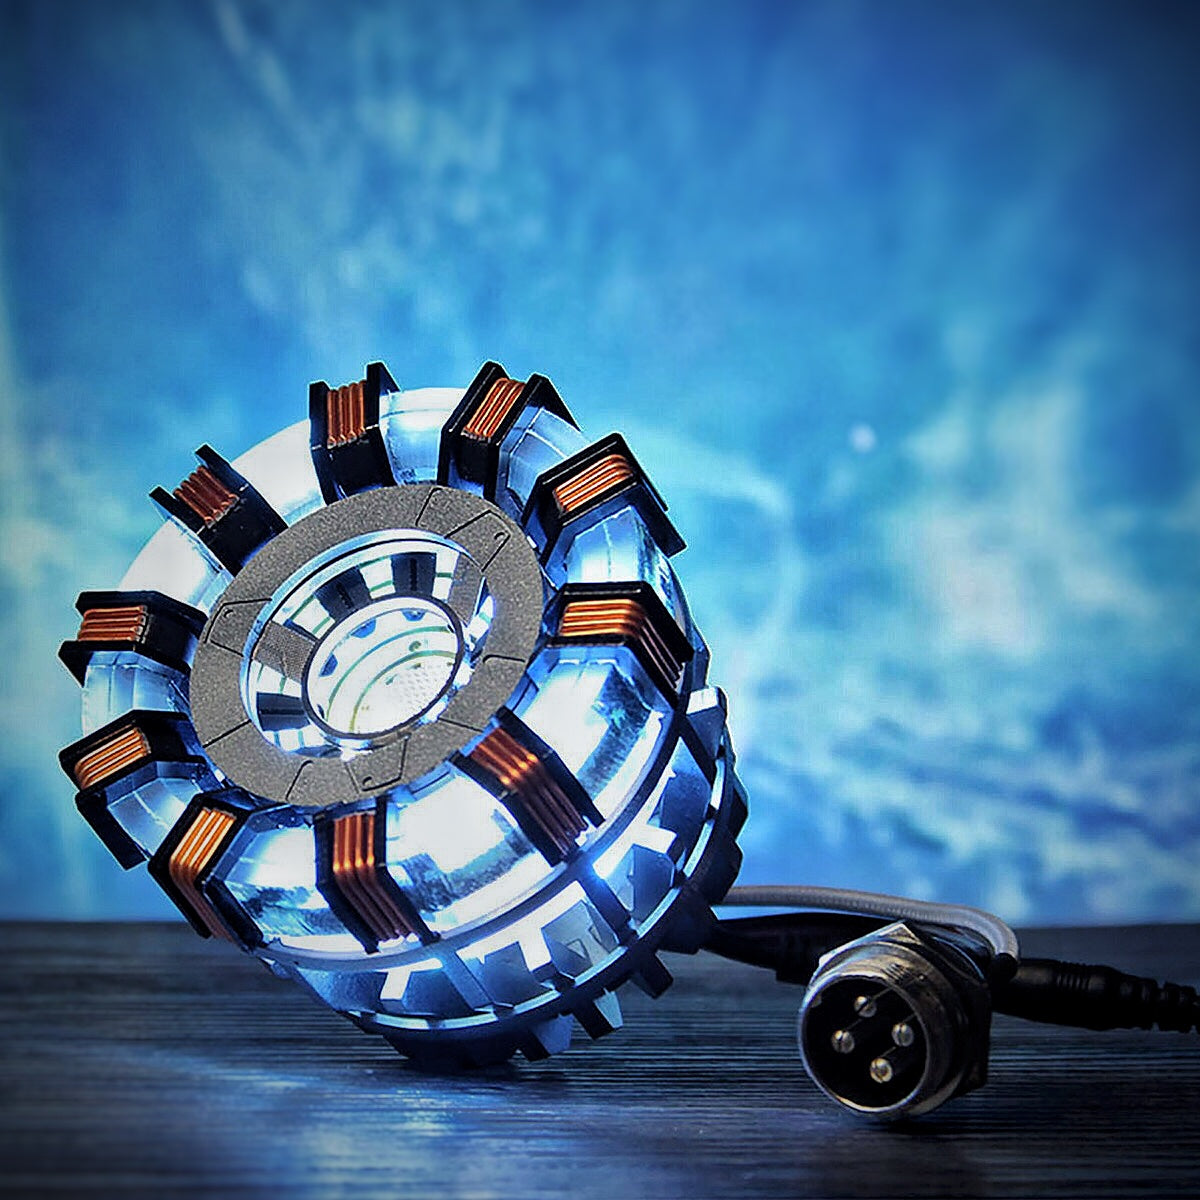 cozyrex,Arc Reactor DIY Model MK2 Led Light Mark Chest Tony Heart Lamp Light DIY Model Science Toy,CozyRex,